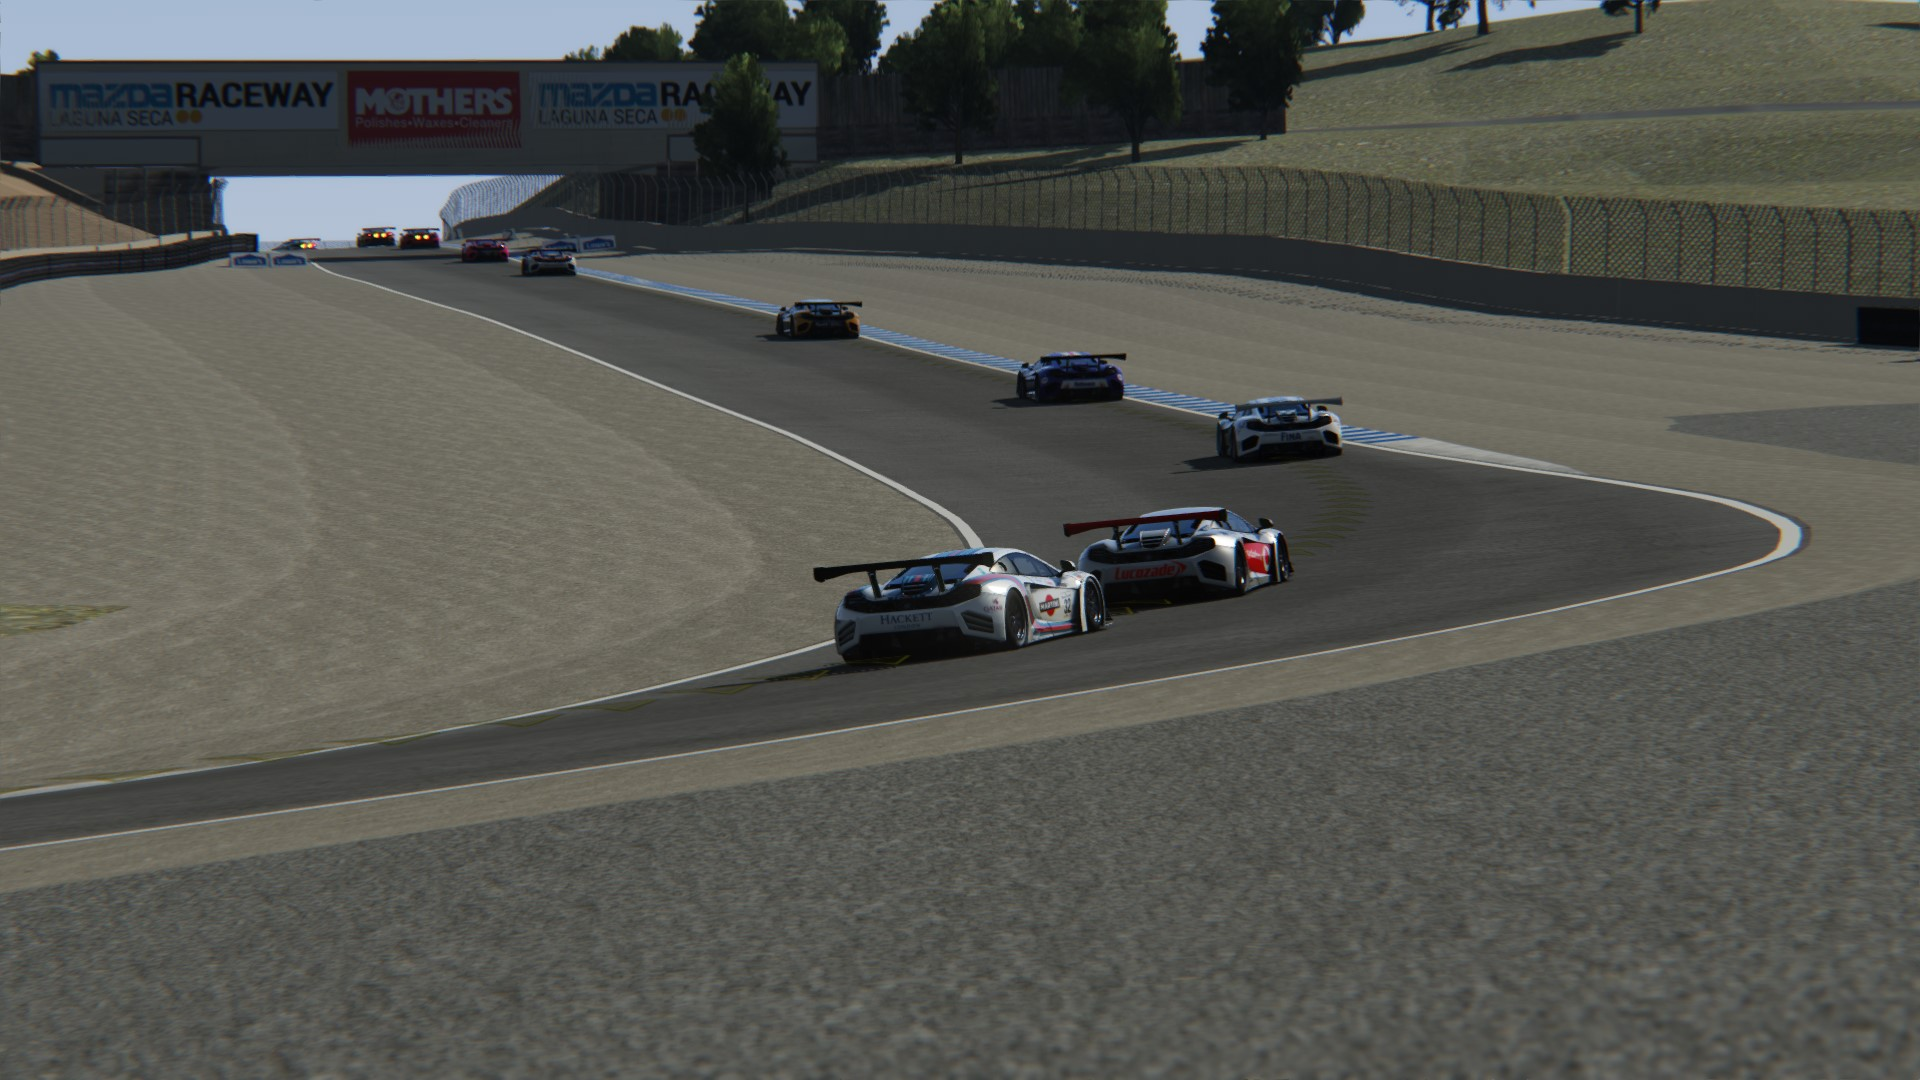 Screenshot_mclaren_mp412c_gt3_bs_lagunaseca_27-5-116-12-38-41.jpg